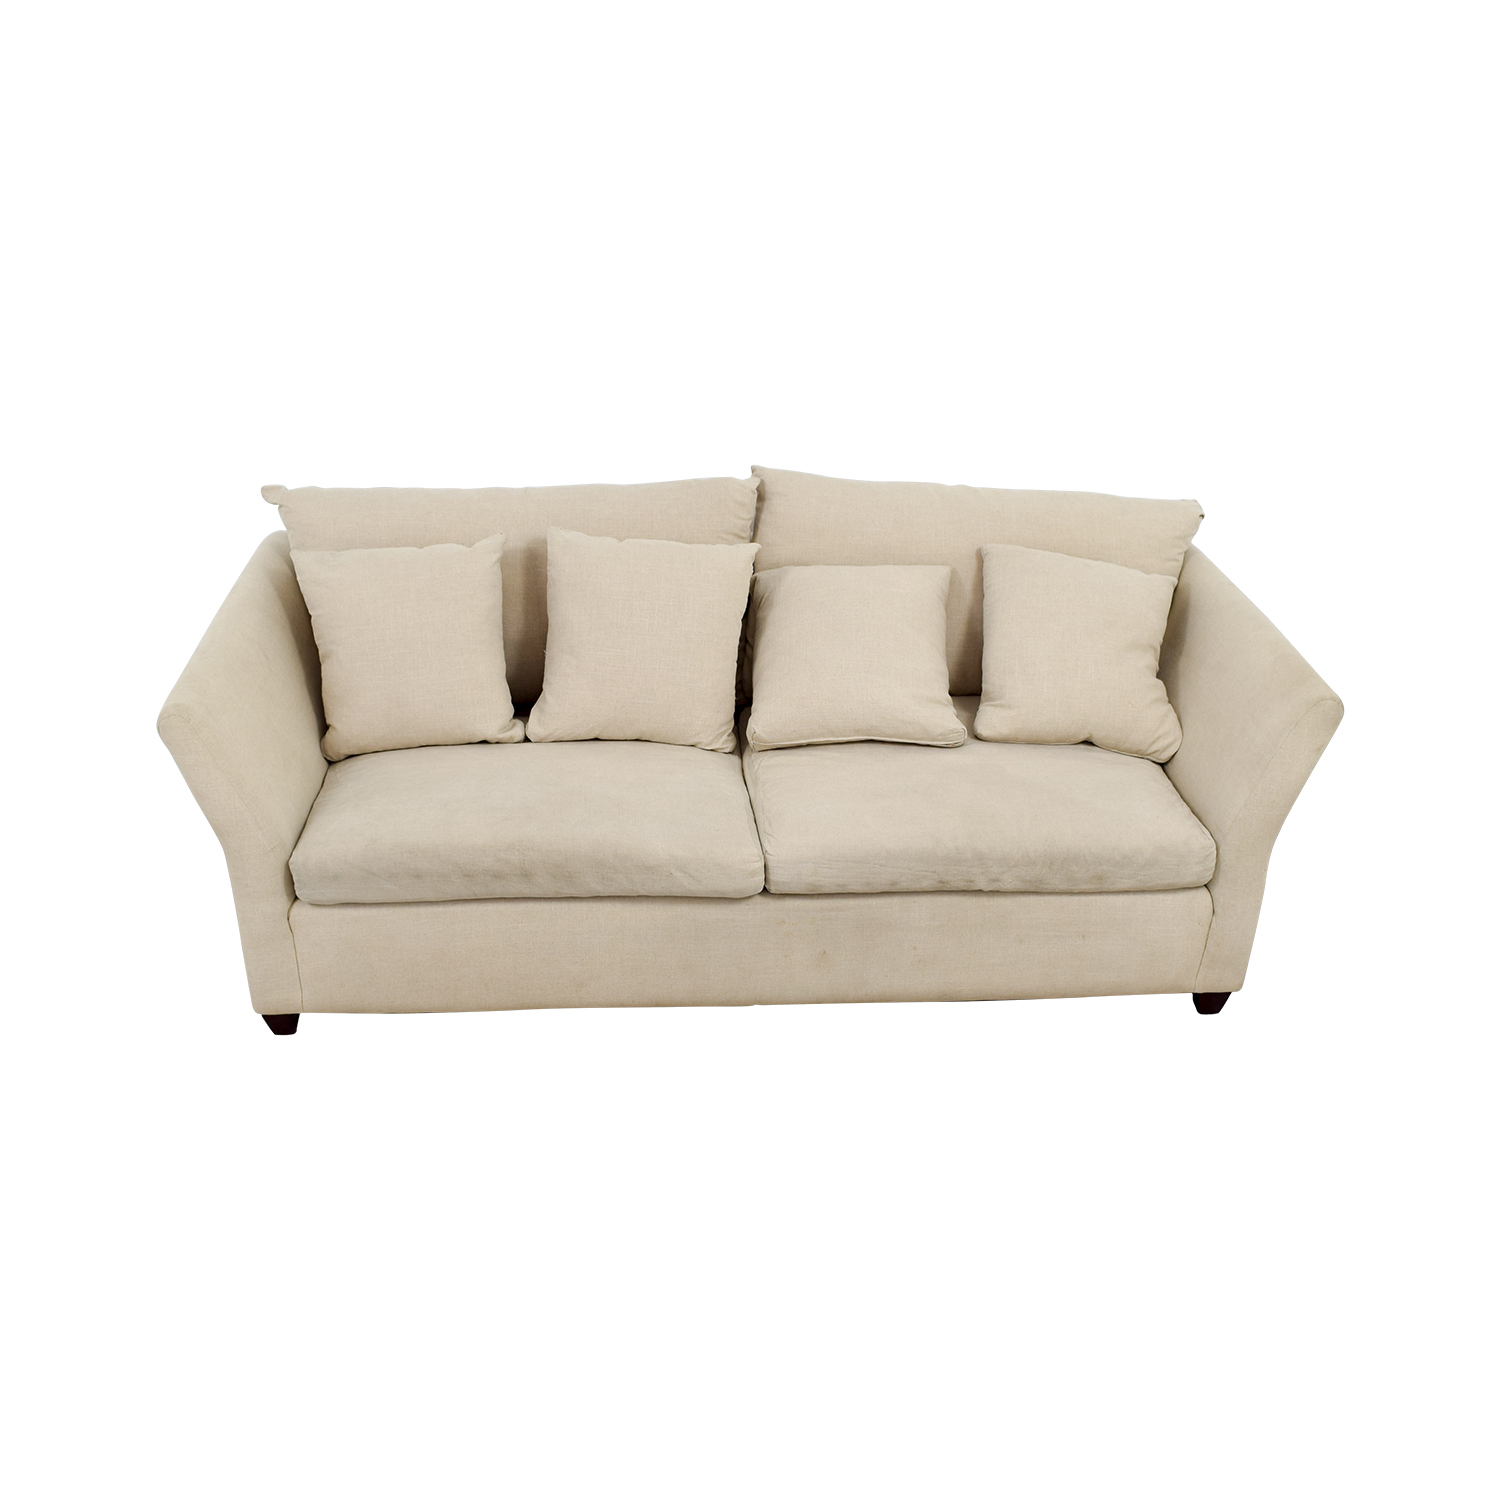 ABC Carpet & Home ABC Carpet & Home Beige Sofa with Pillows price